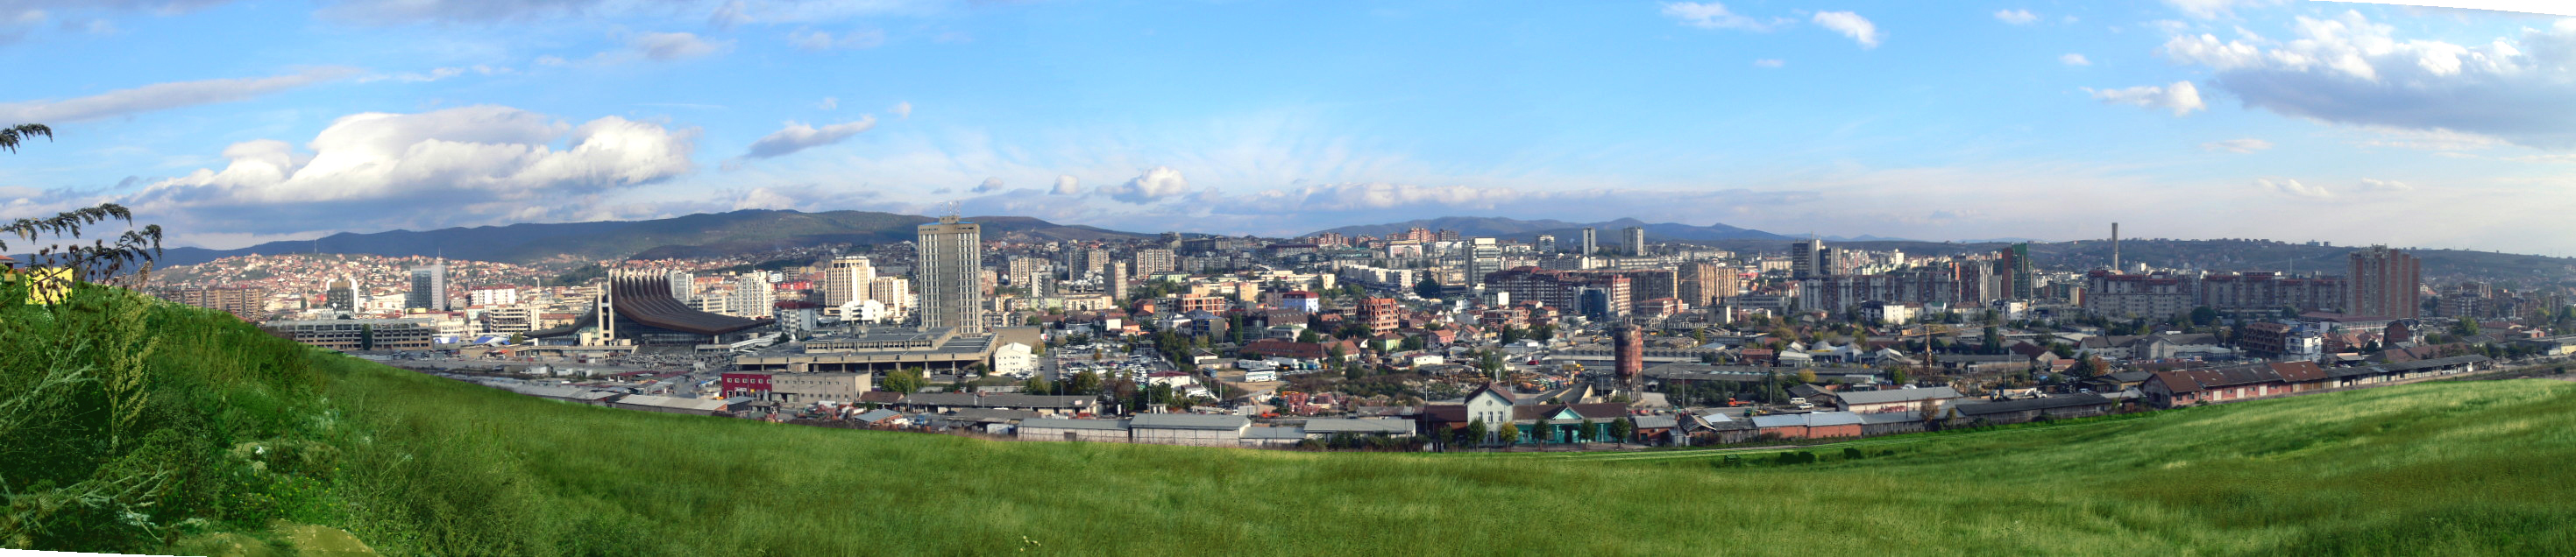 Overview of the city of Pristina from the hill.jpg